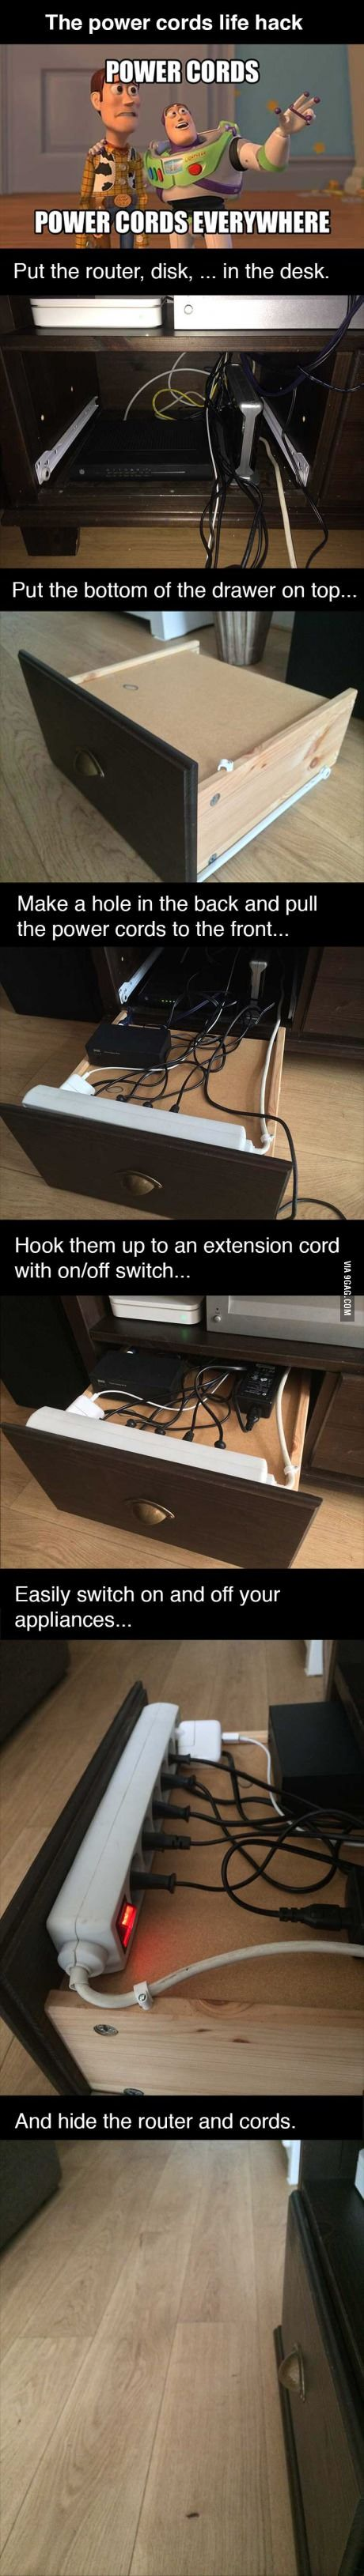 I give you: the power cords life hack.